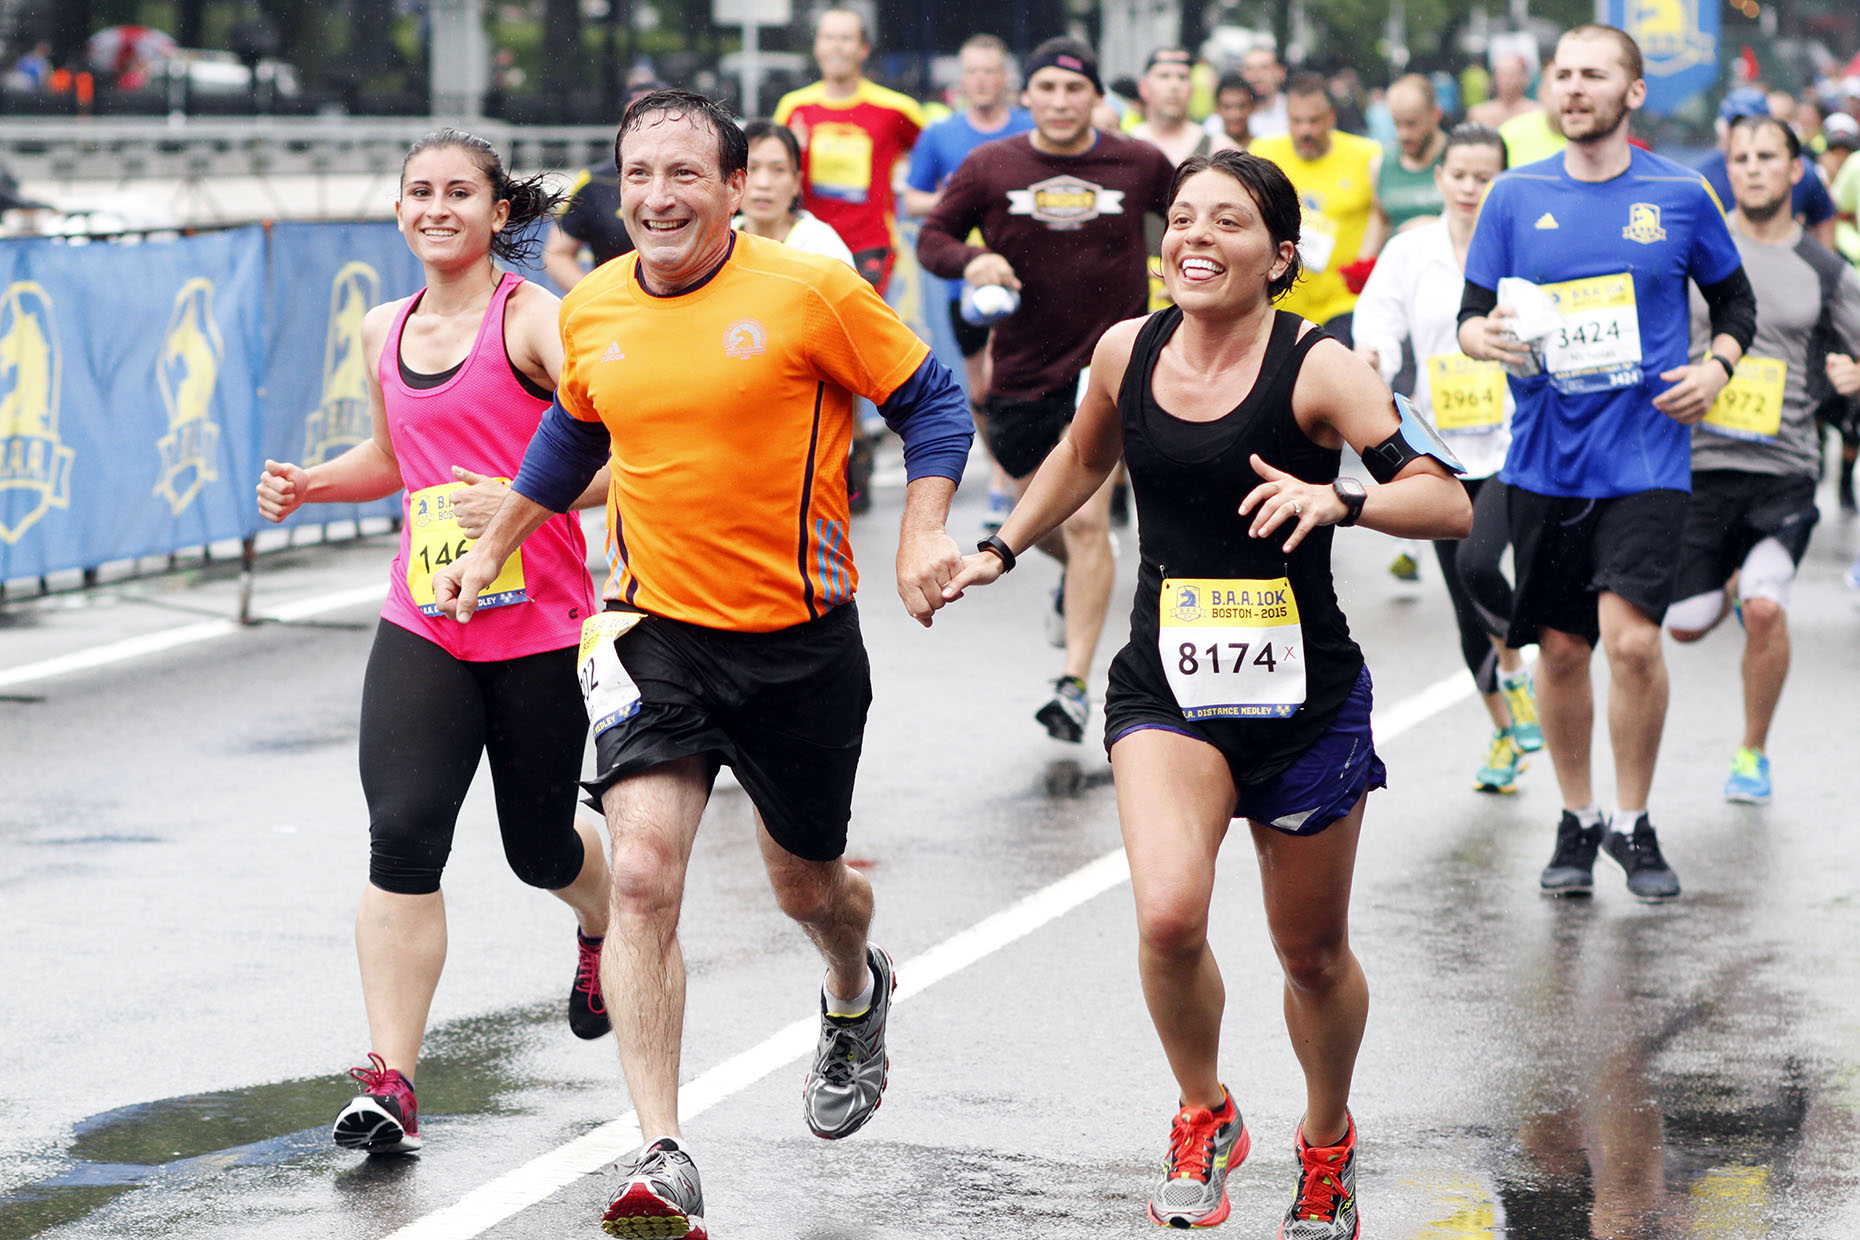 Smiling wet Runners